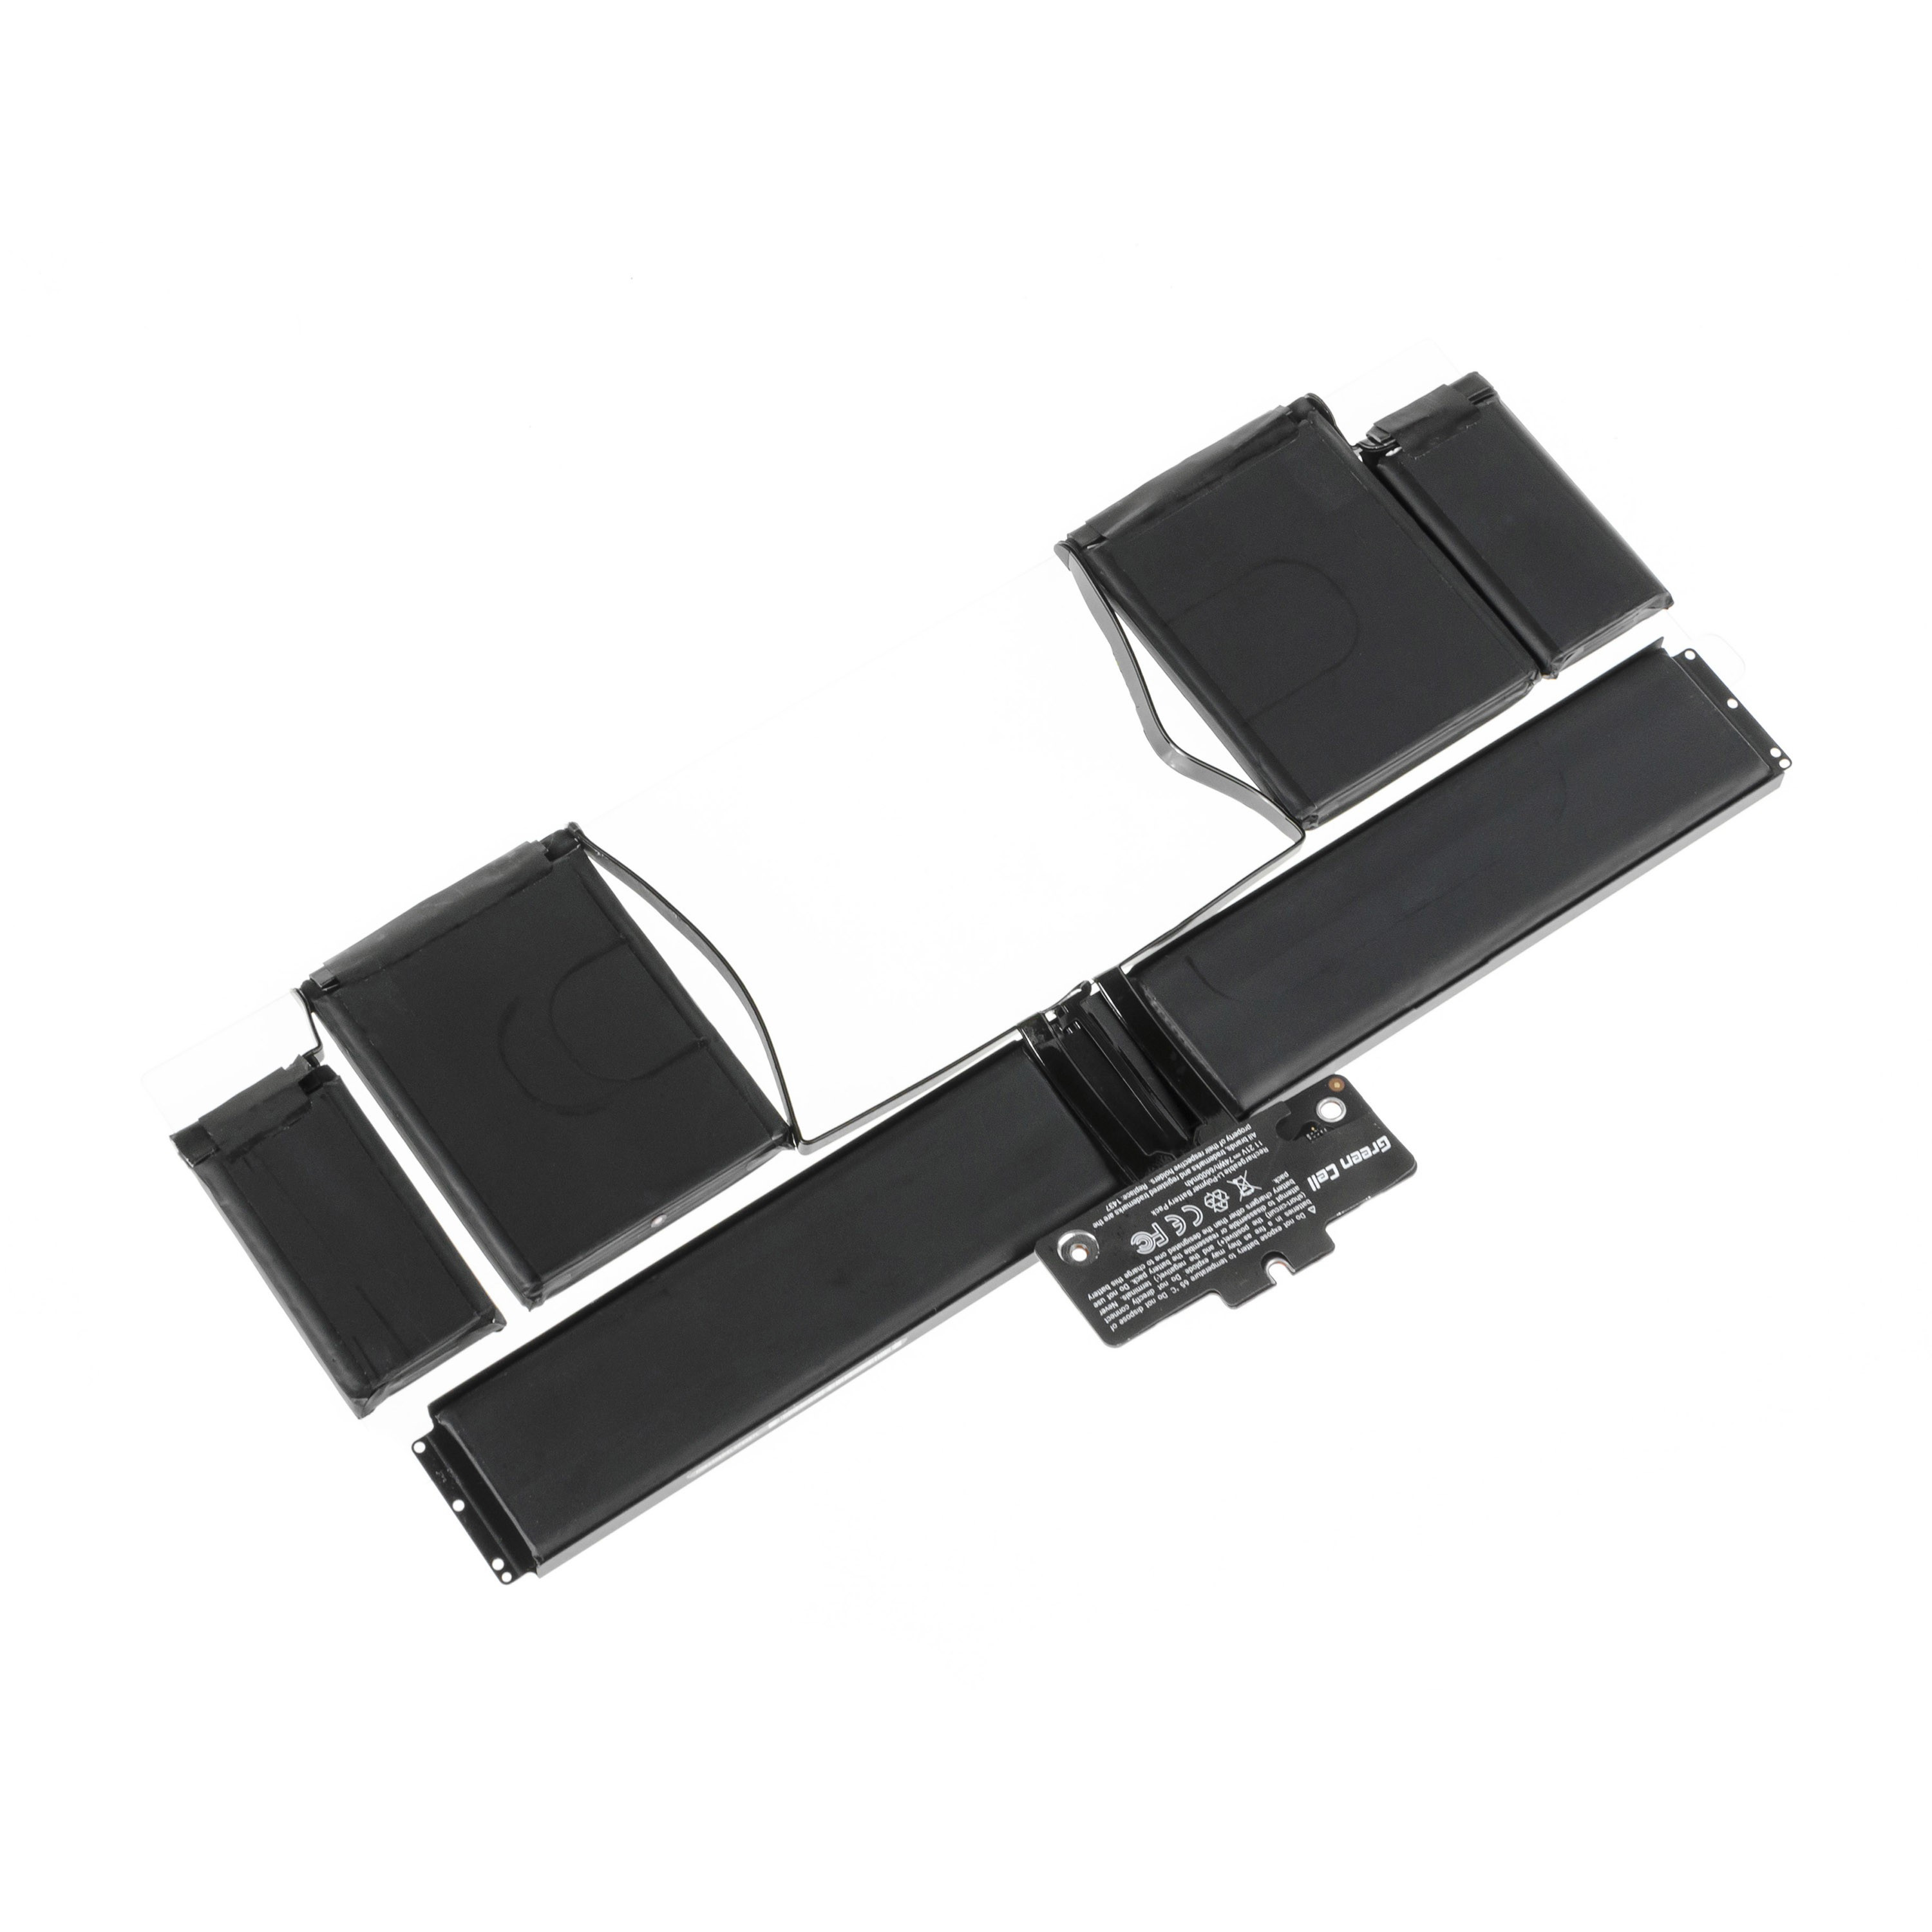 Green Cell PRO Baterie pro Apple Macbook Pro 13 A1425 (Late 2012, Early 2013) / 11,21V 6600mAh